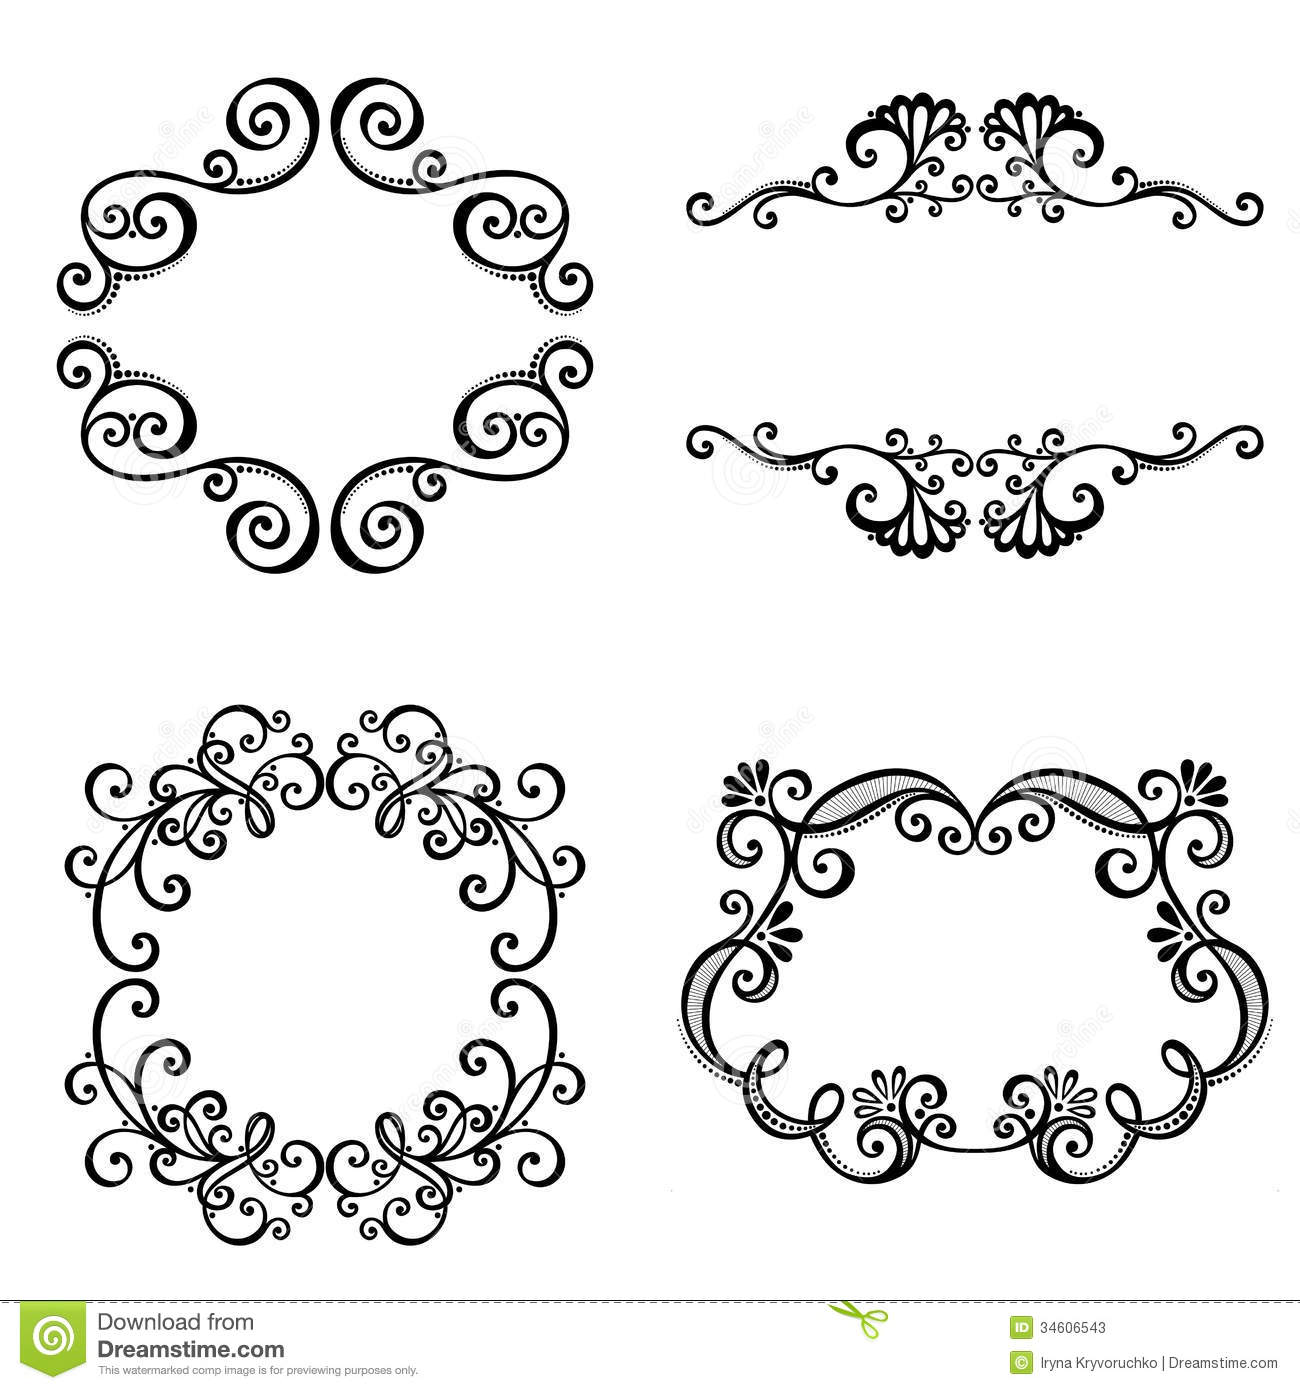 Decorative Ornamental Frame For Text. Stock Photos - Image: 34606543